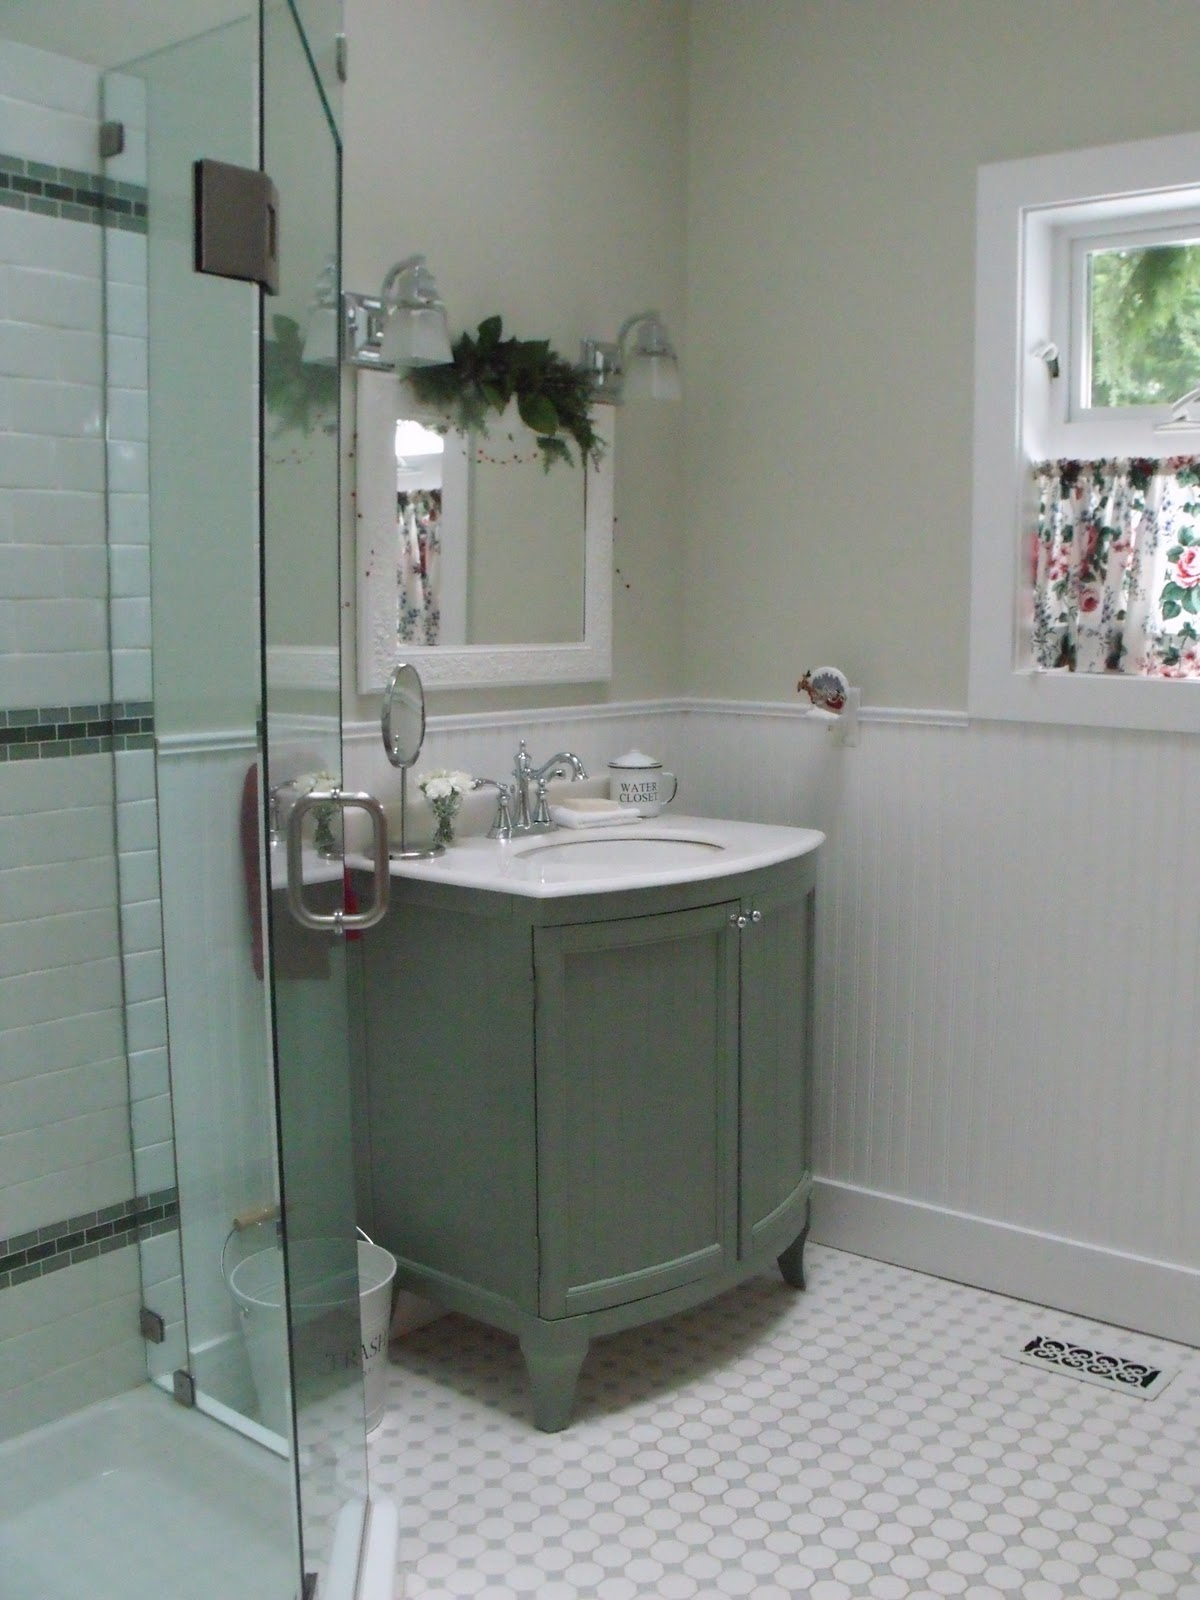 Tongue and groove for bathrooms - Tongue And Groove For Bathrooms 15